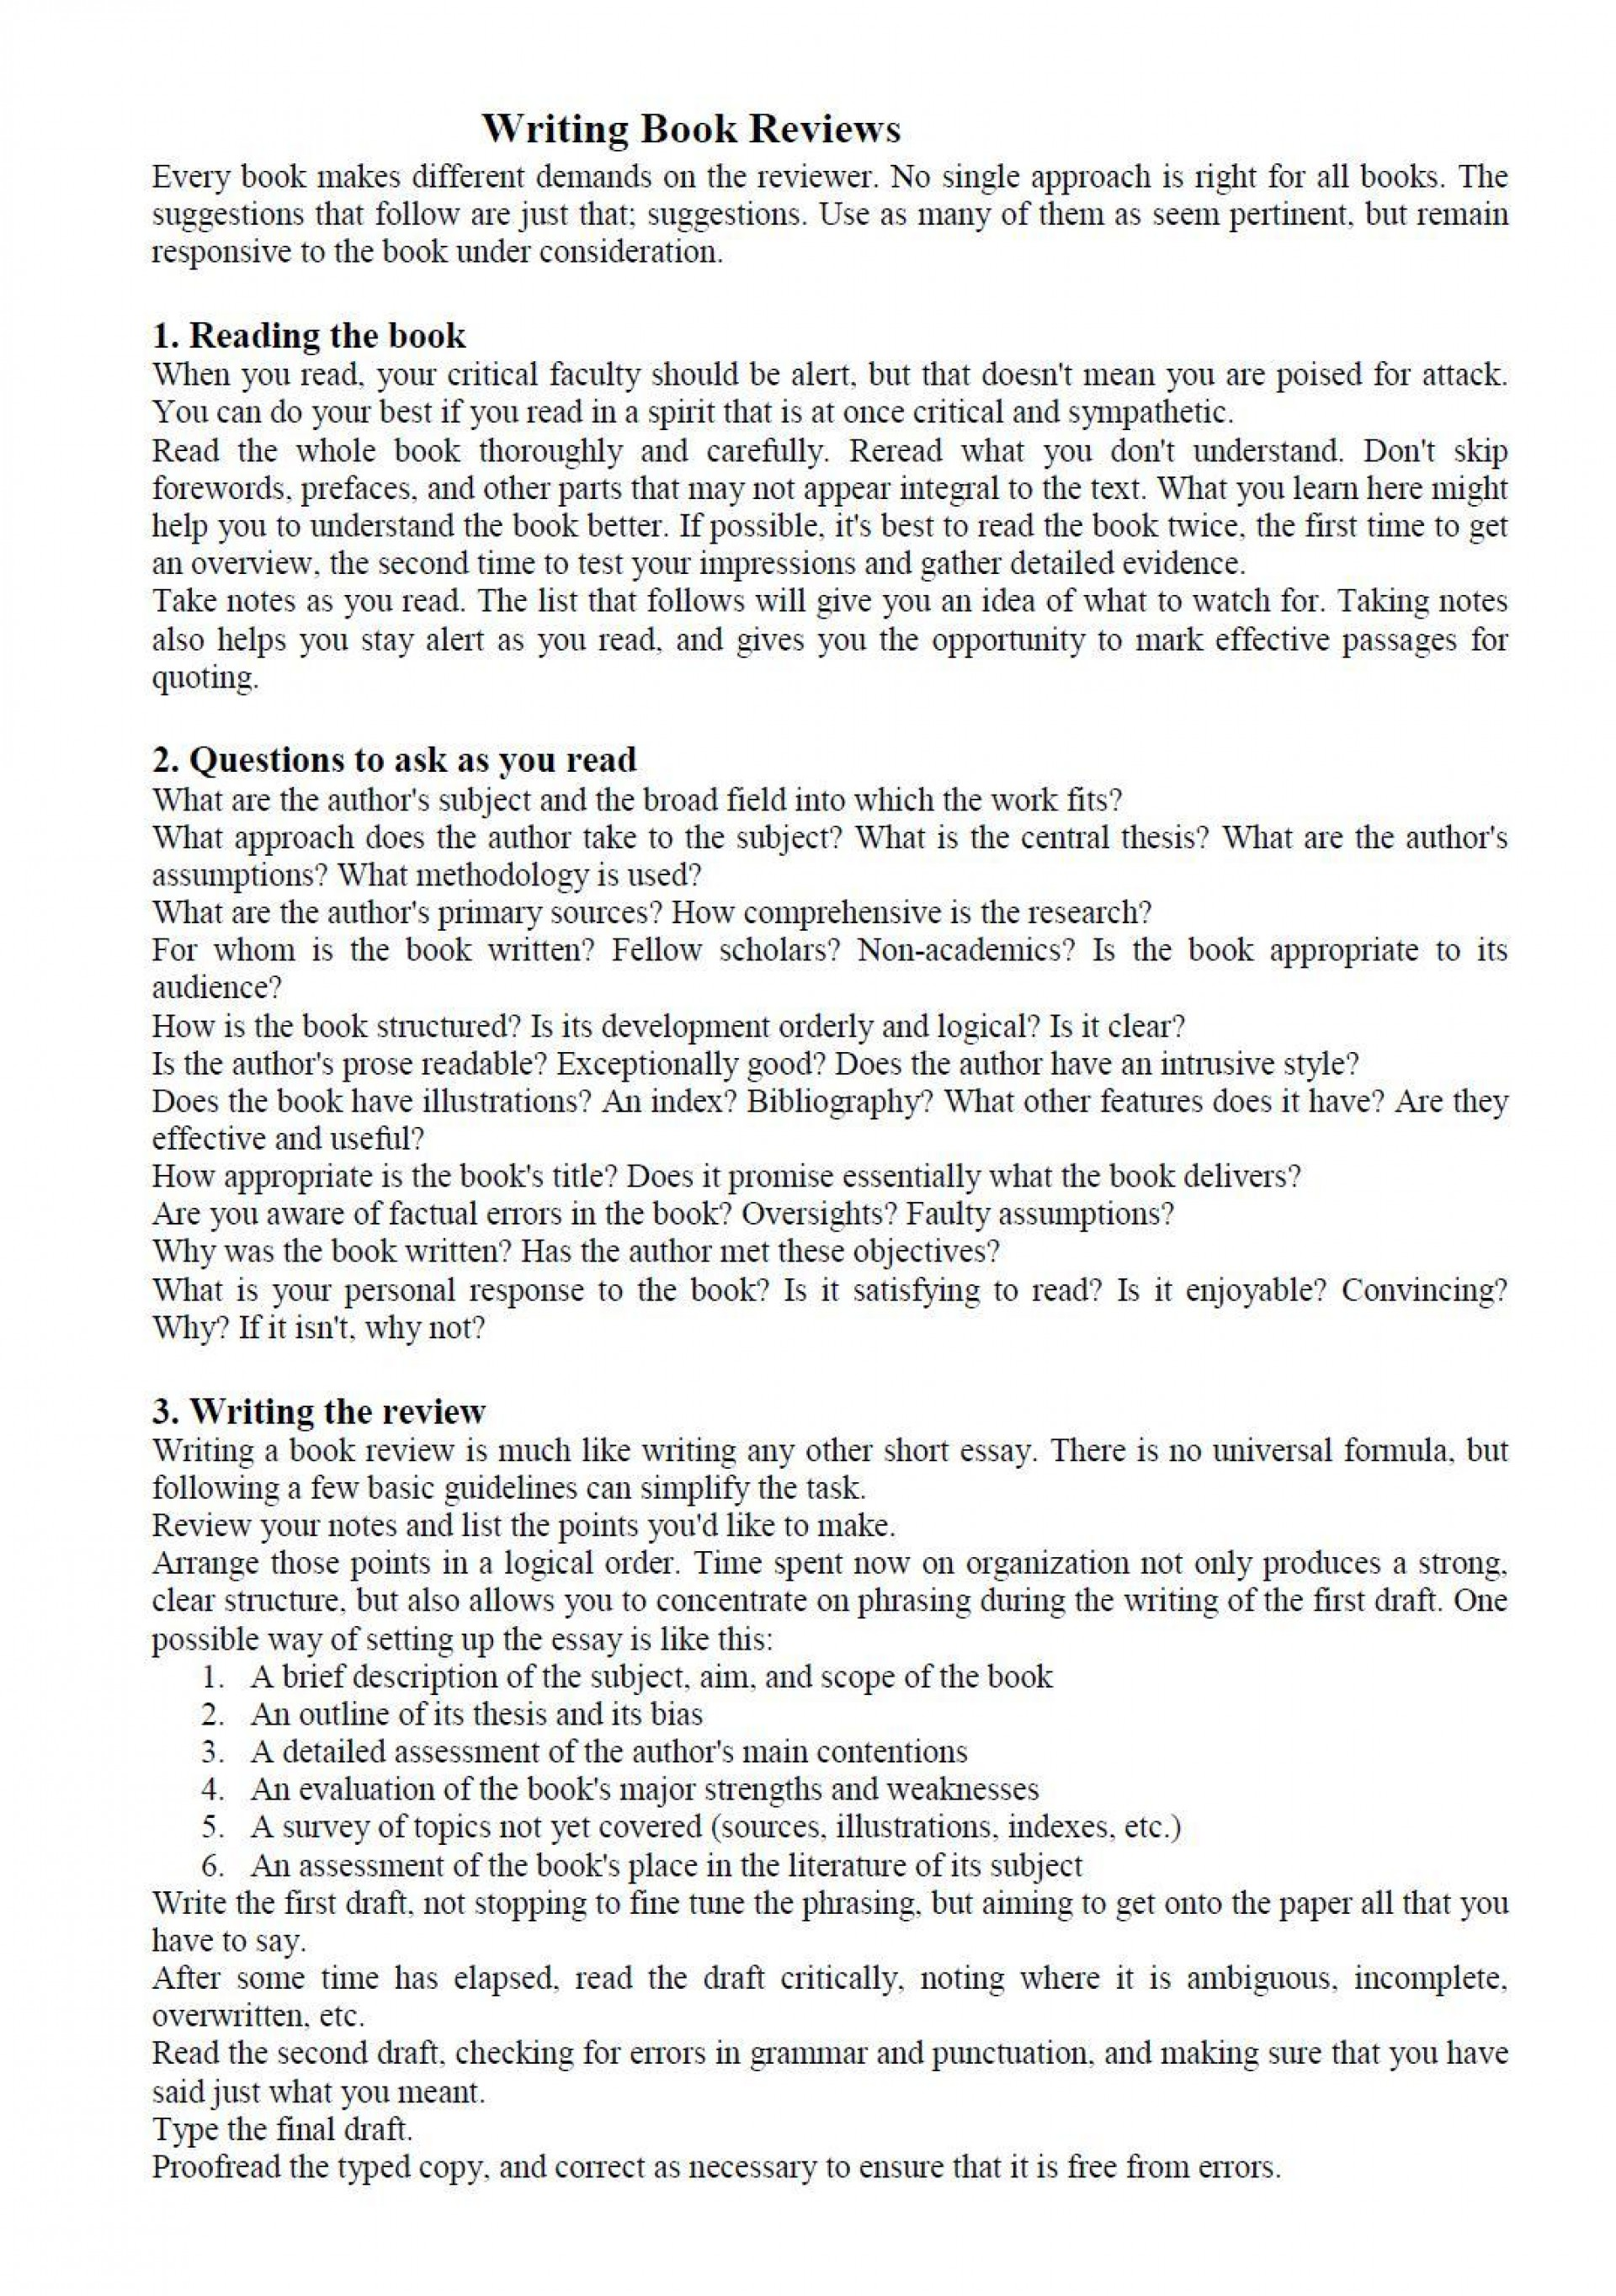 011 Grab My Essay Review Example Writing Reviews How Write Book College Application For Free Common App Can Someone Peer And Correct It Fantastic 1920